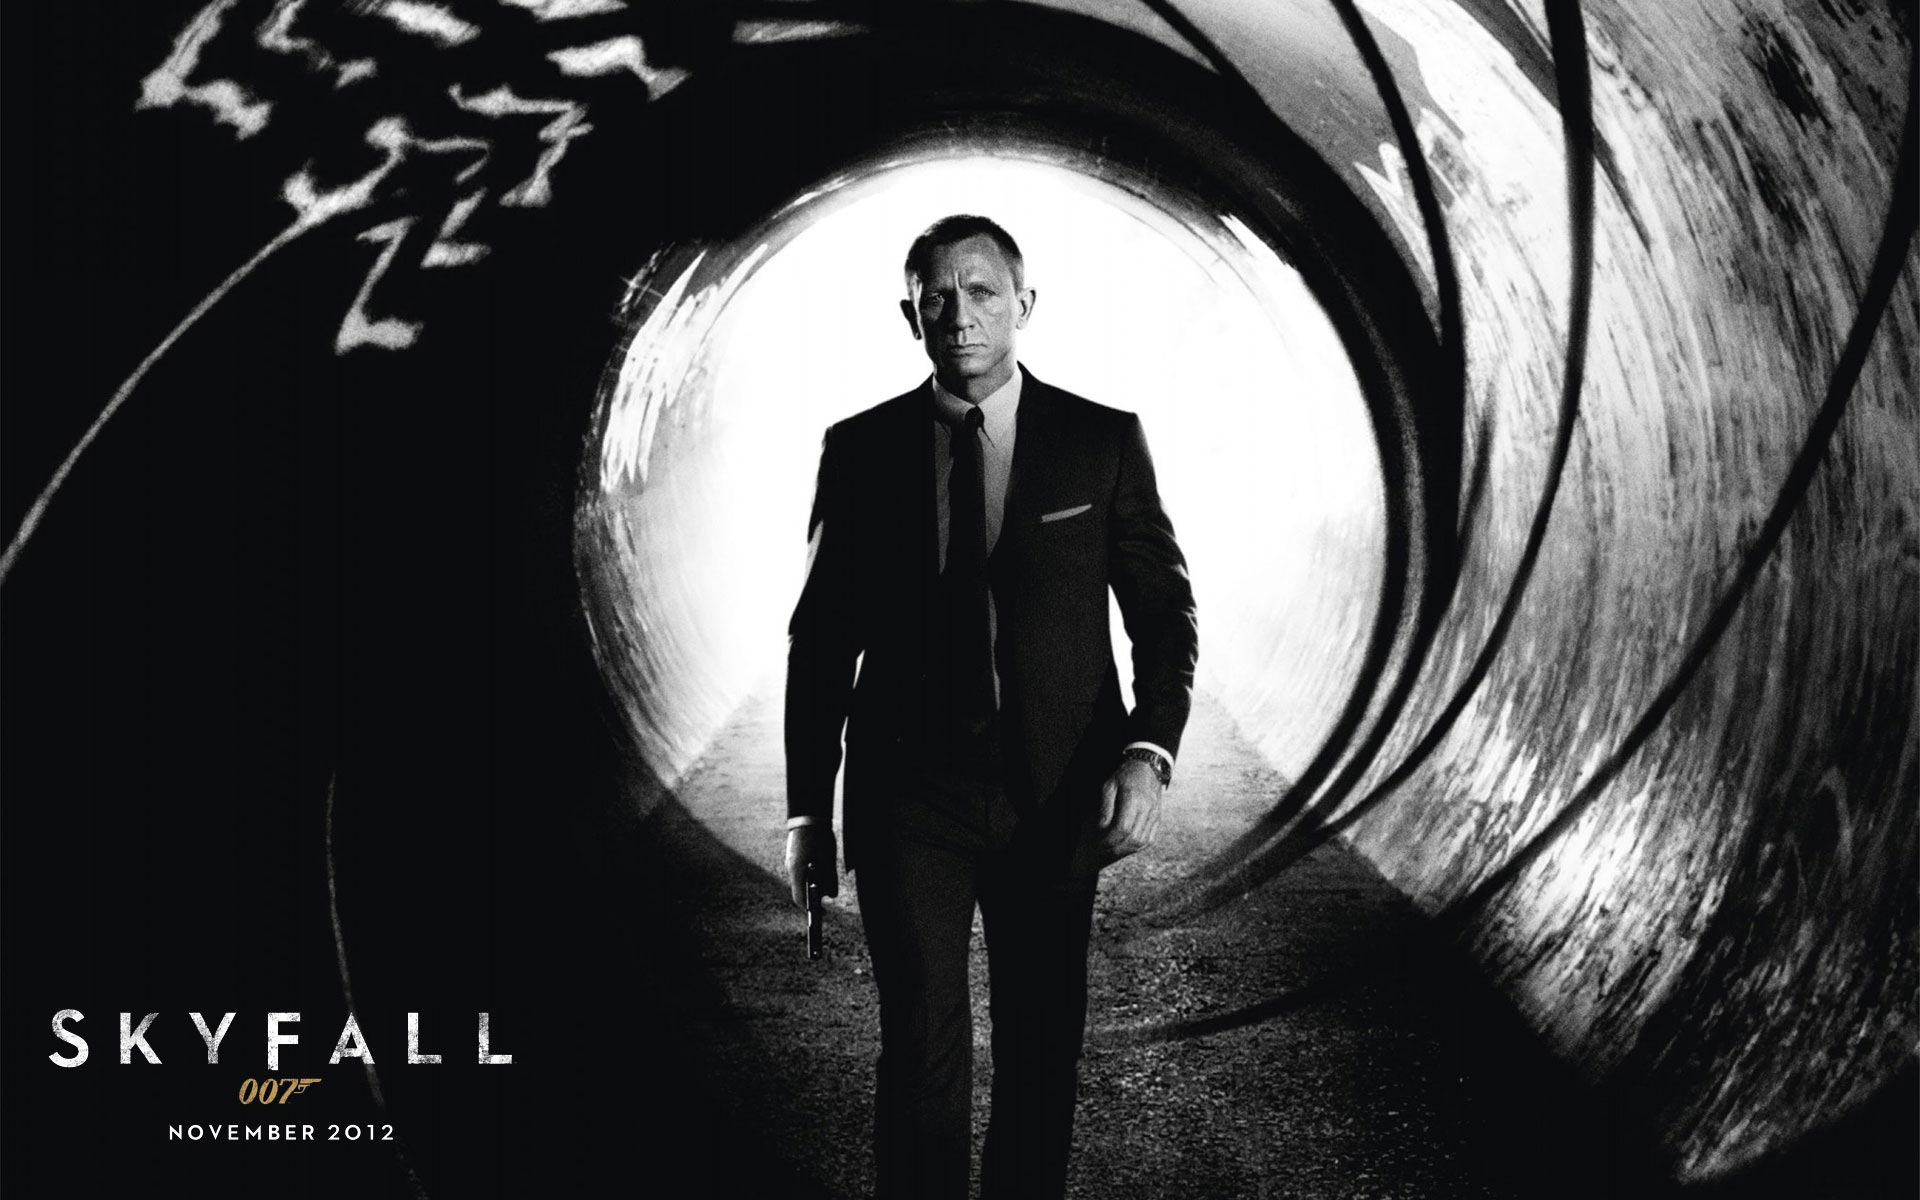 Skyfall James Bond wallpaper   Daniel Craig wallpaper 32623673 1920x1200